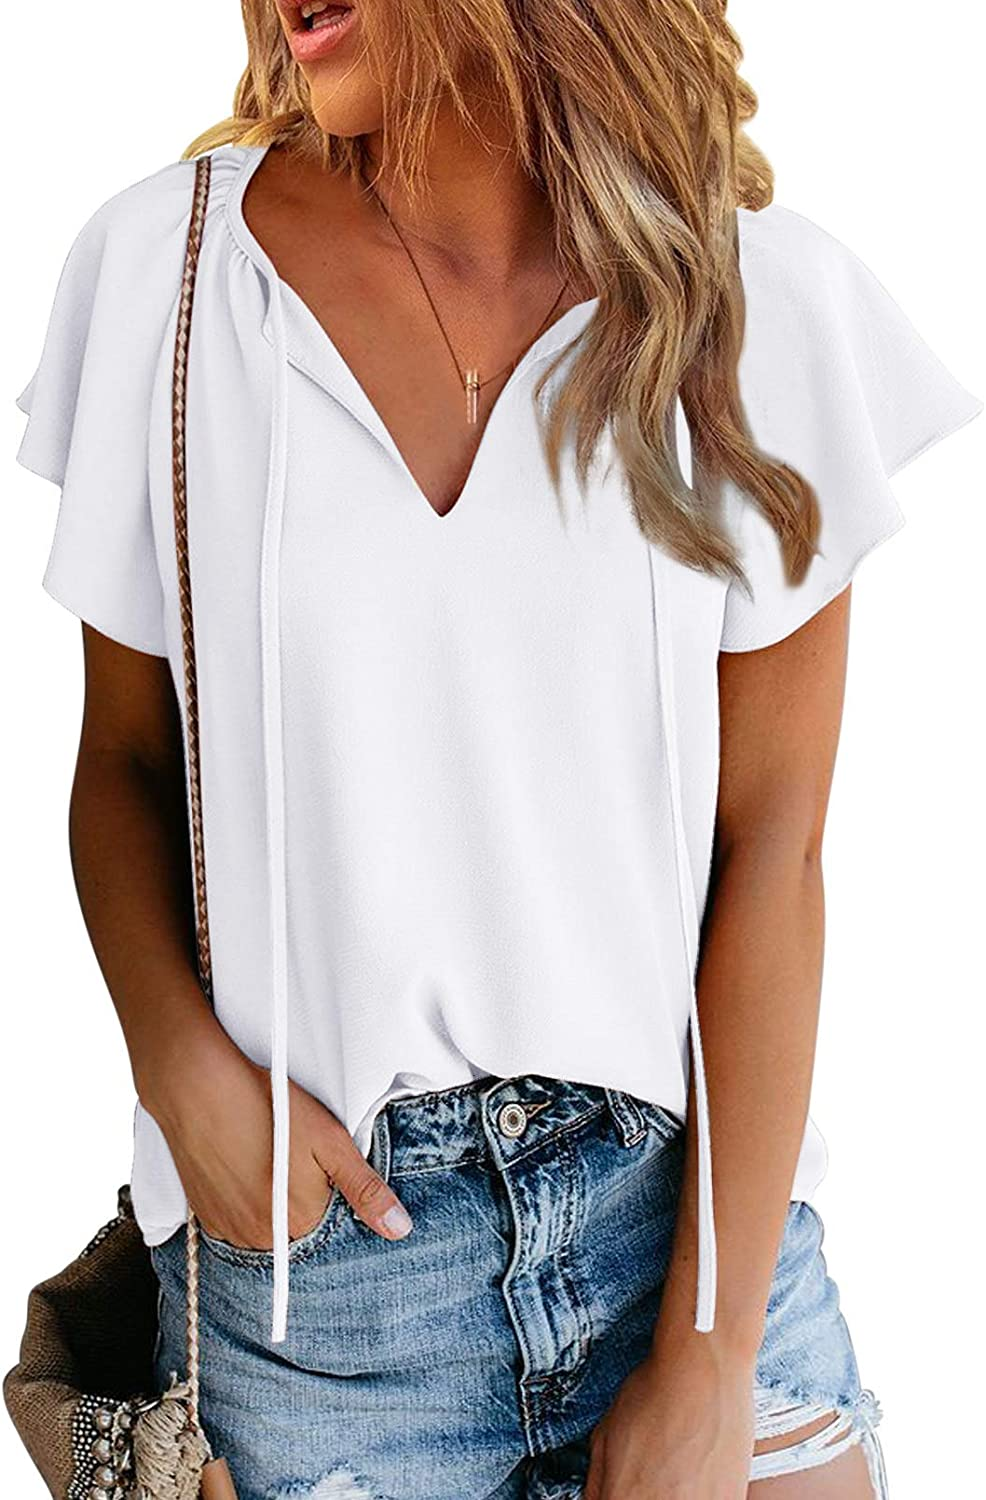 Ecrocoo Women's Casual Ruffled Short Sleeve Tee Tops Elegant V-Neck Blouse Shirts Summer Solid Color T-Shirt